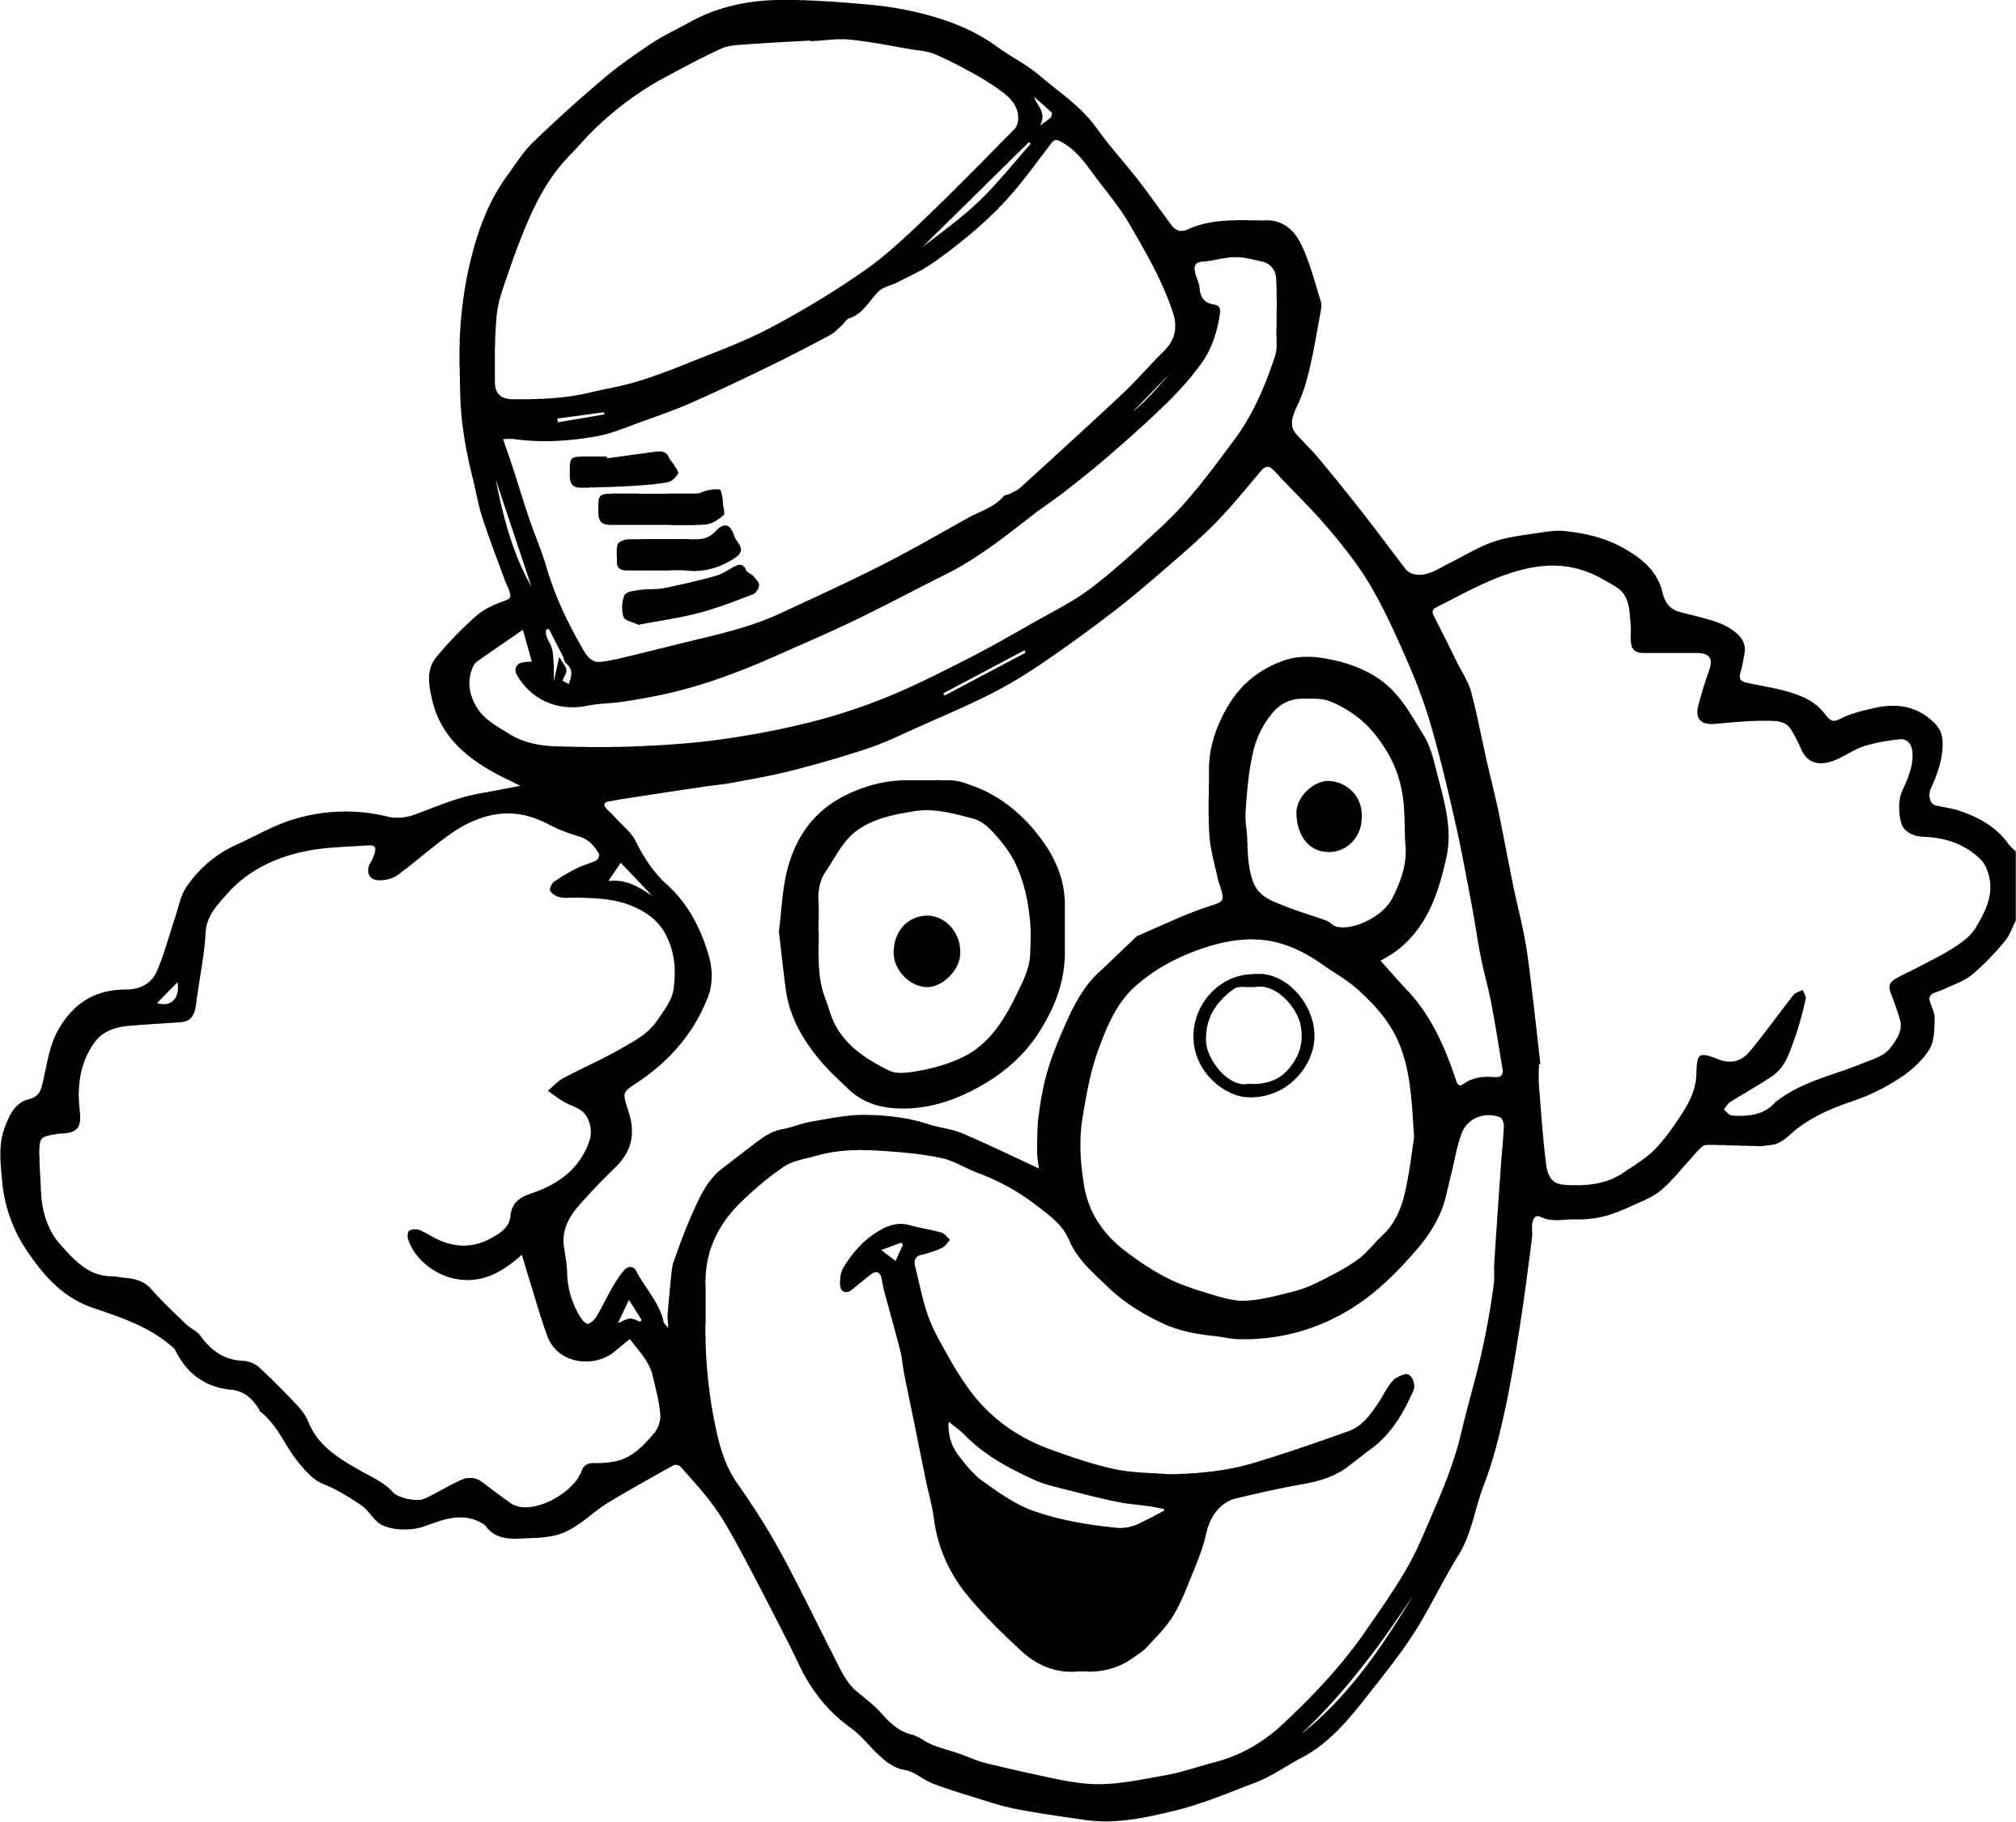 clown face coloring page clown face drawing at getdrawings free download coloring clown face page